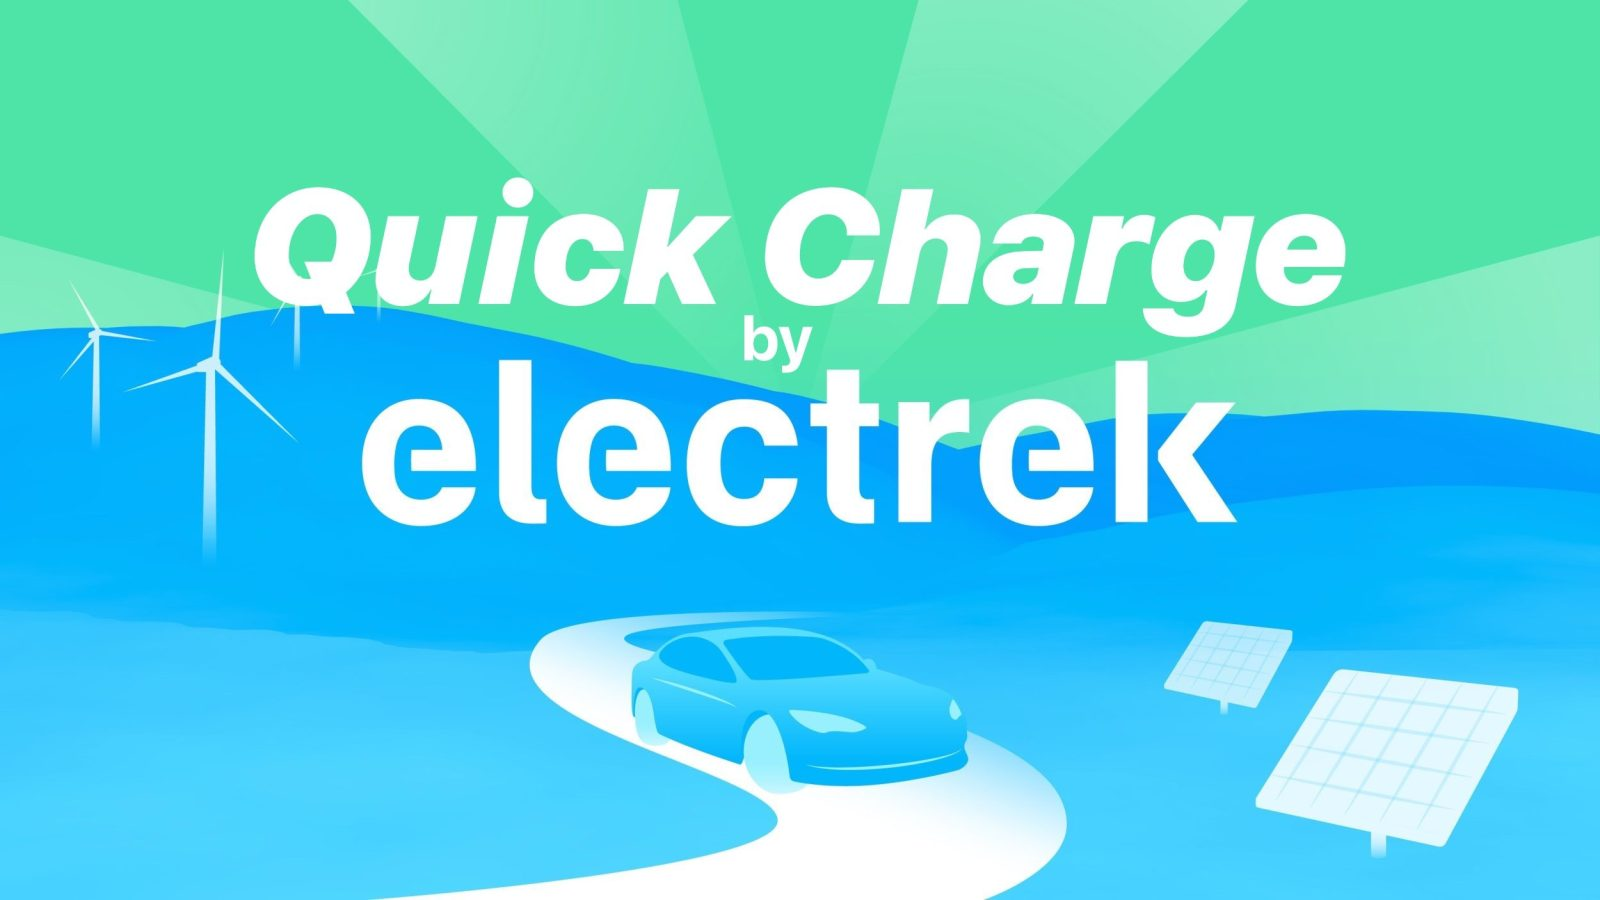 Quick Charge Podcast: September 21, 2021